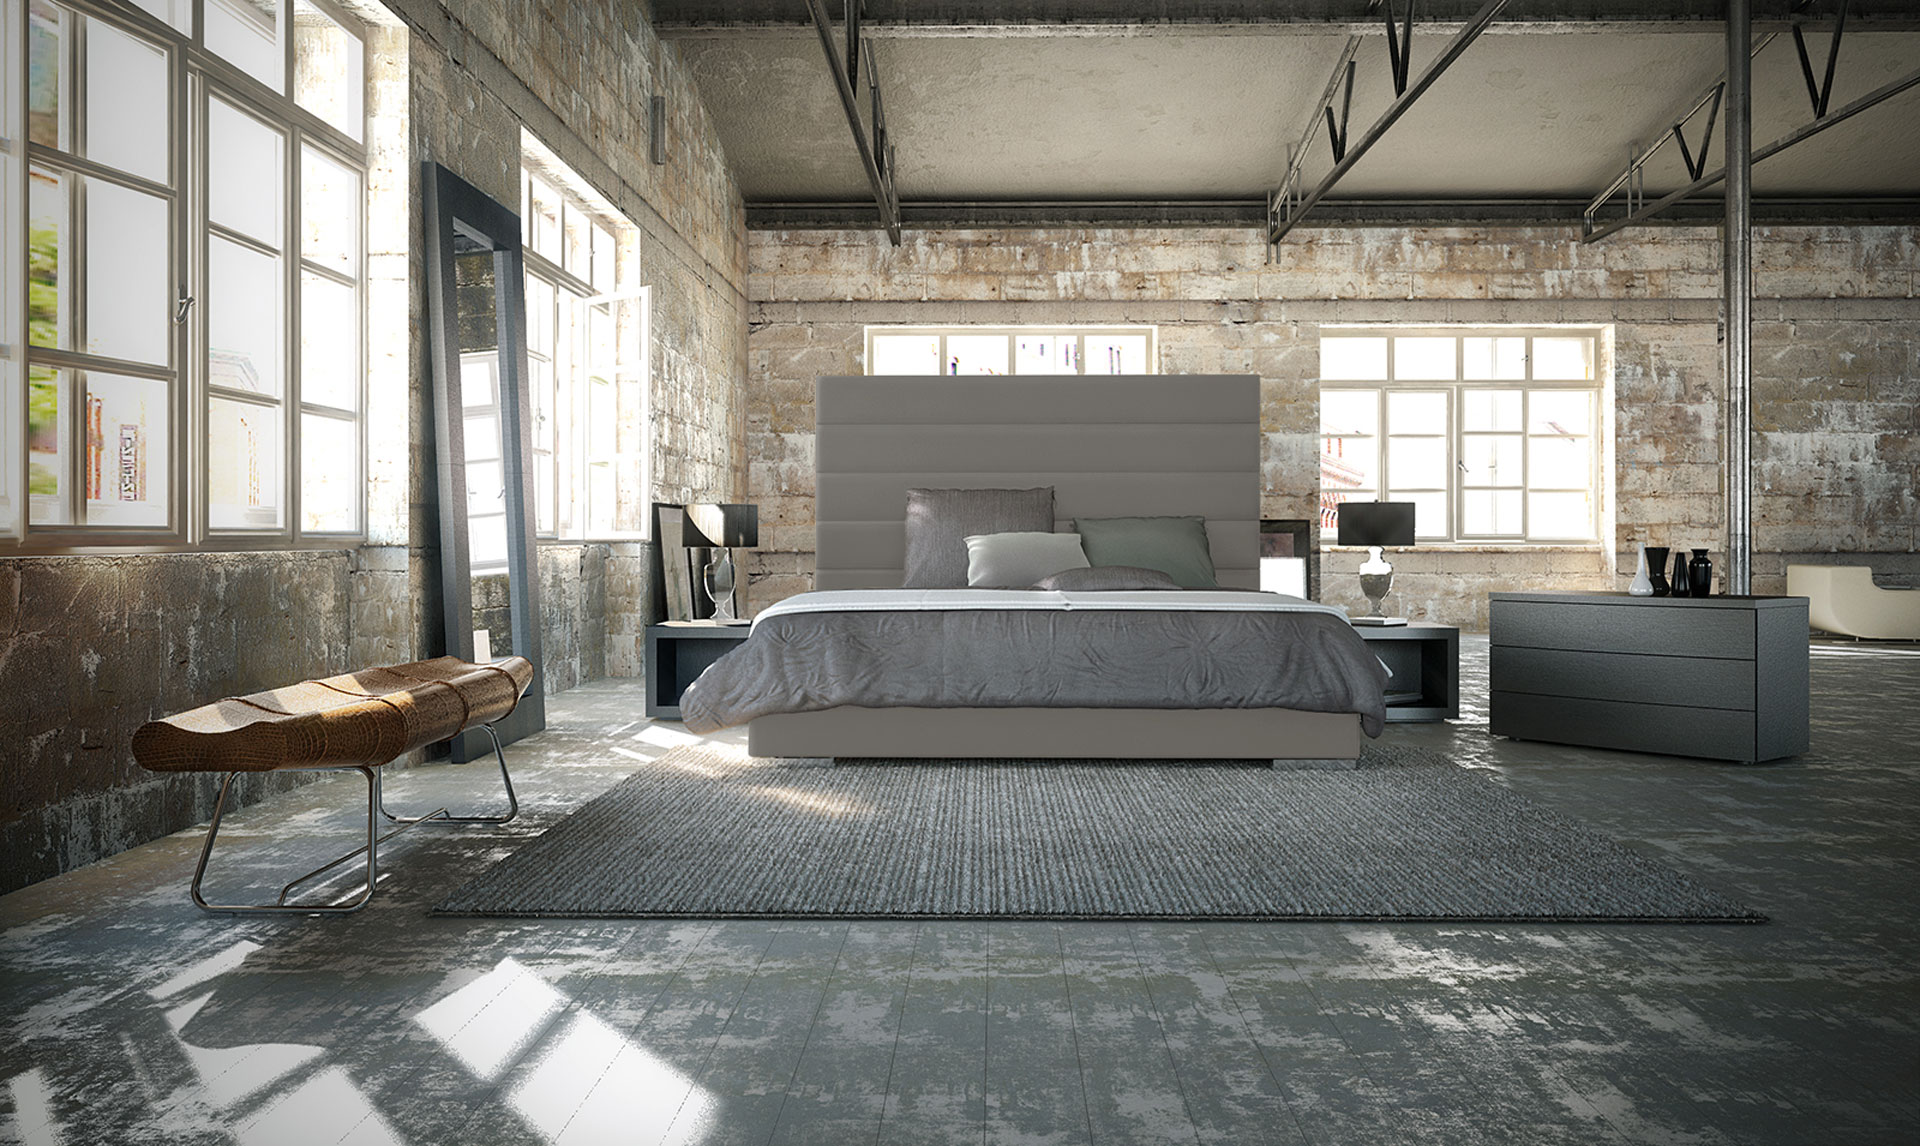 Industrial Chic Living room planning pCon.planner interior design